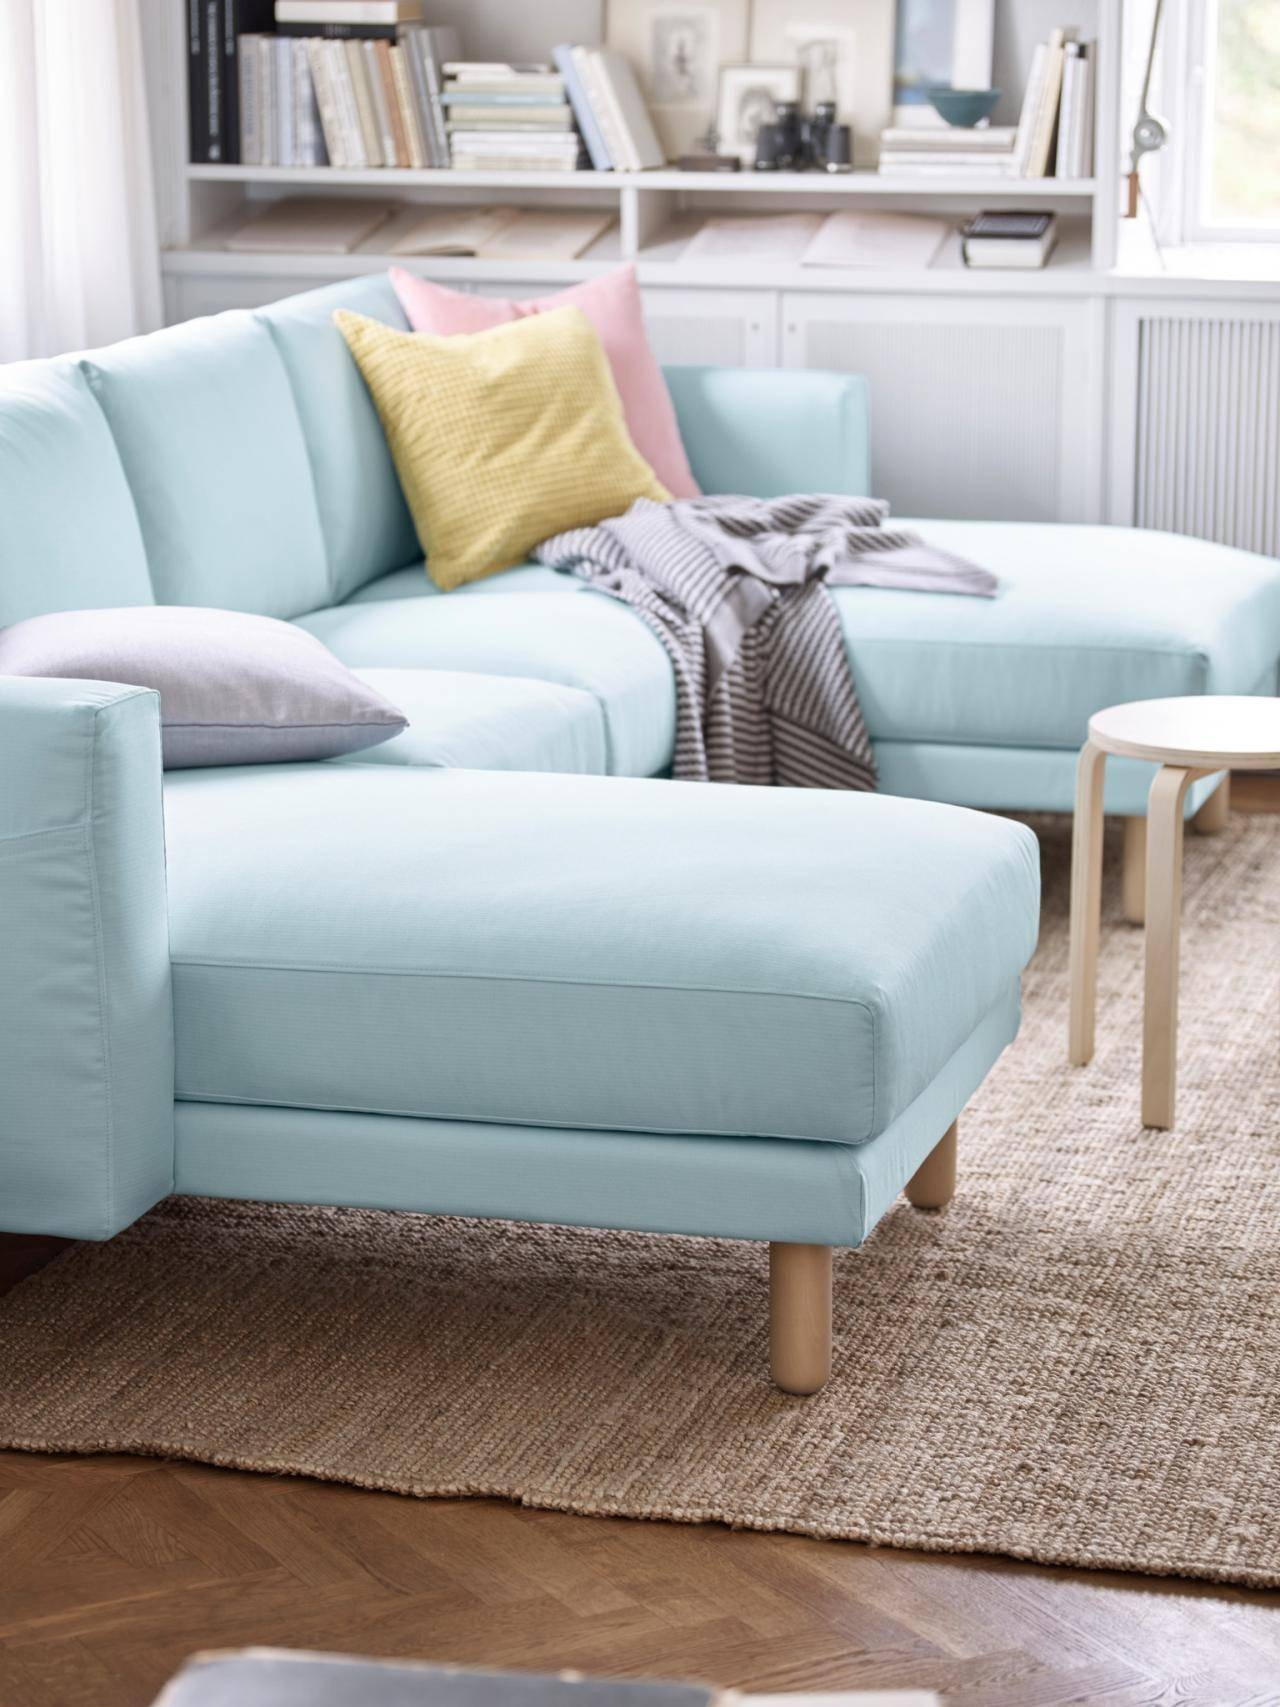 Modern And Sophisticated Full Size Sofa Bed — Home Design within Full Size Sofa Beds (Image 9 of 15)